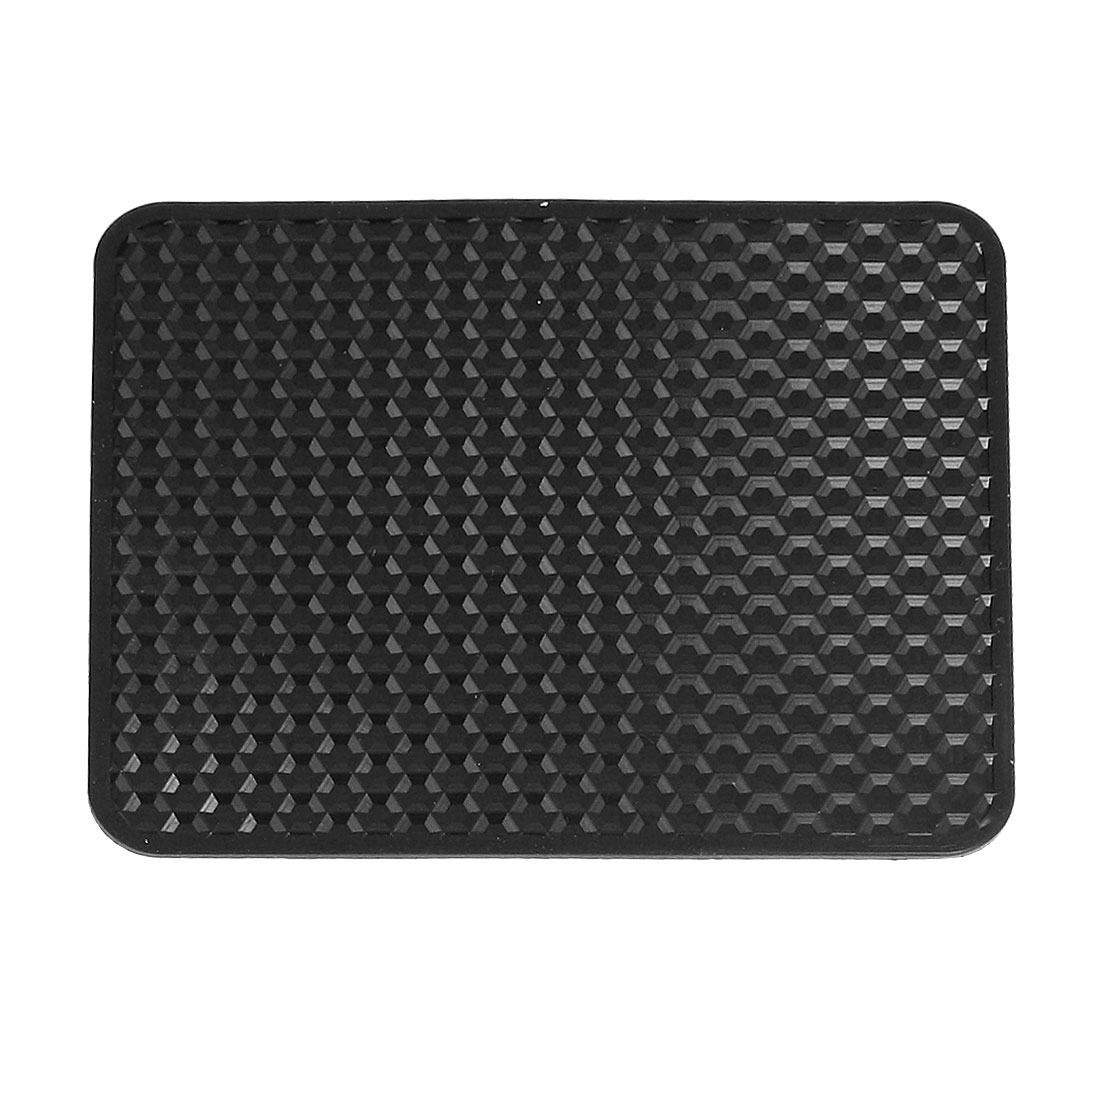 Auto Car Textured Mobile Phone Holding Nonslip Rubber Pad Mat Black